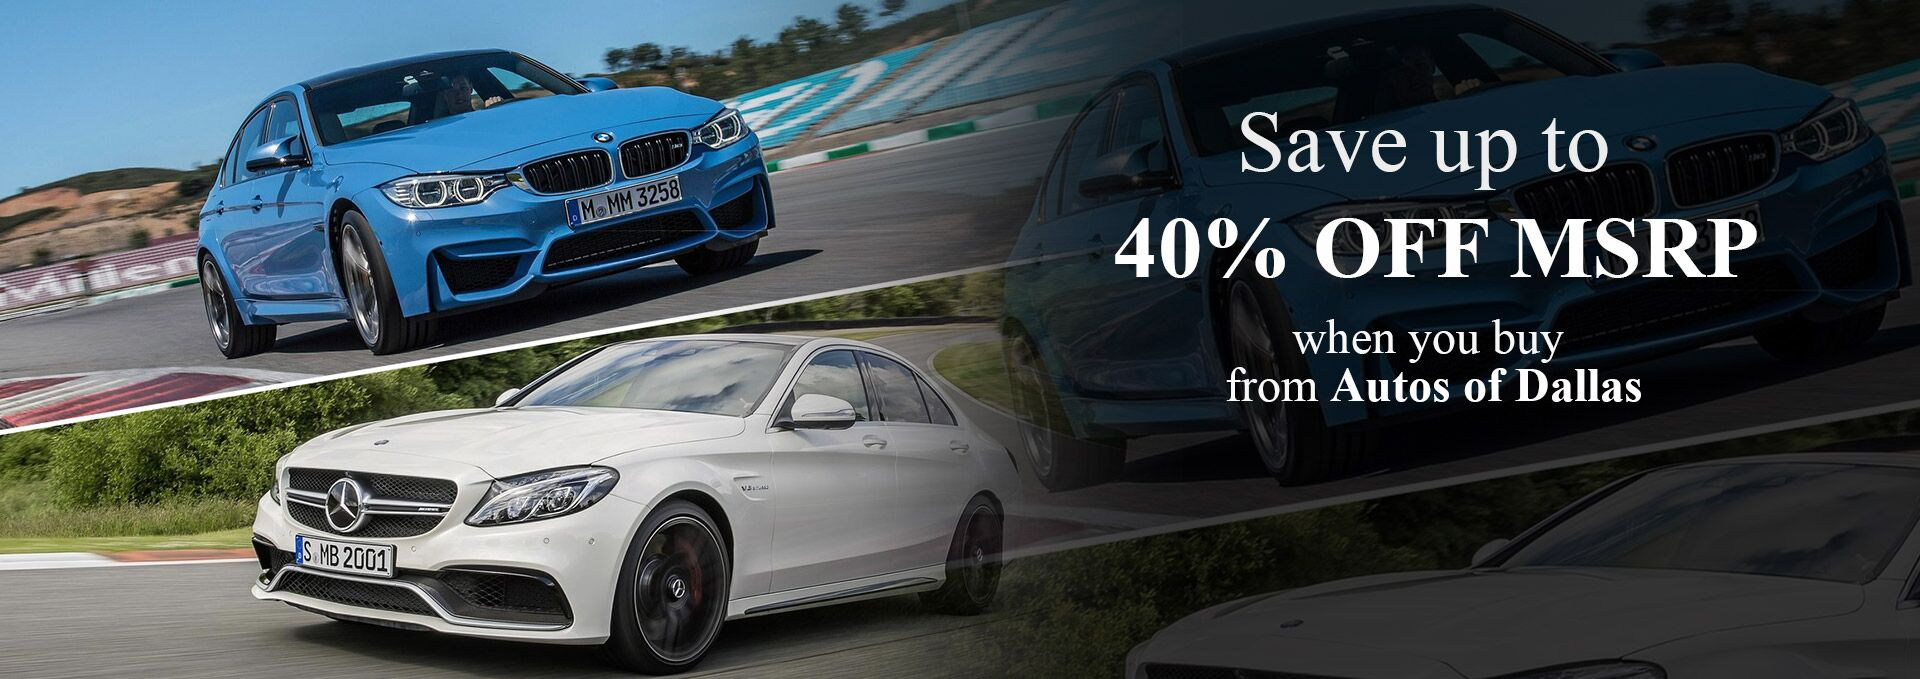 40% Off Late Model Vehicles at